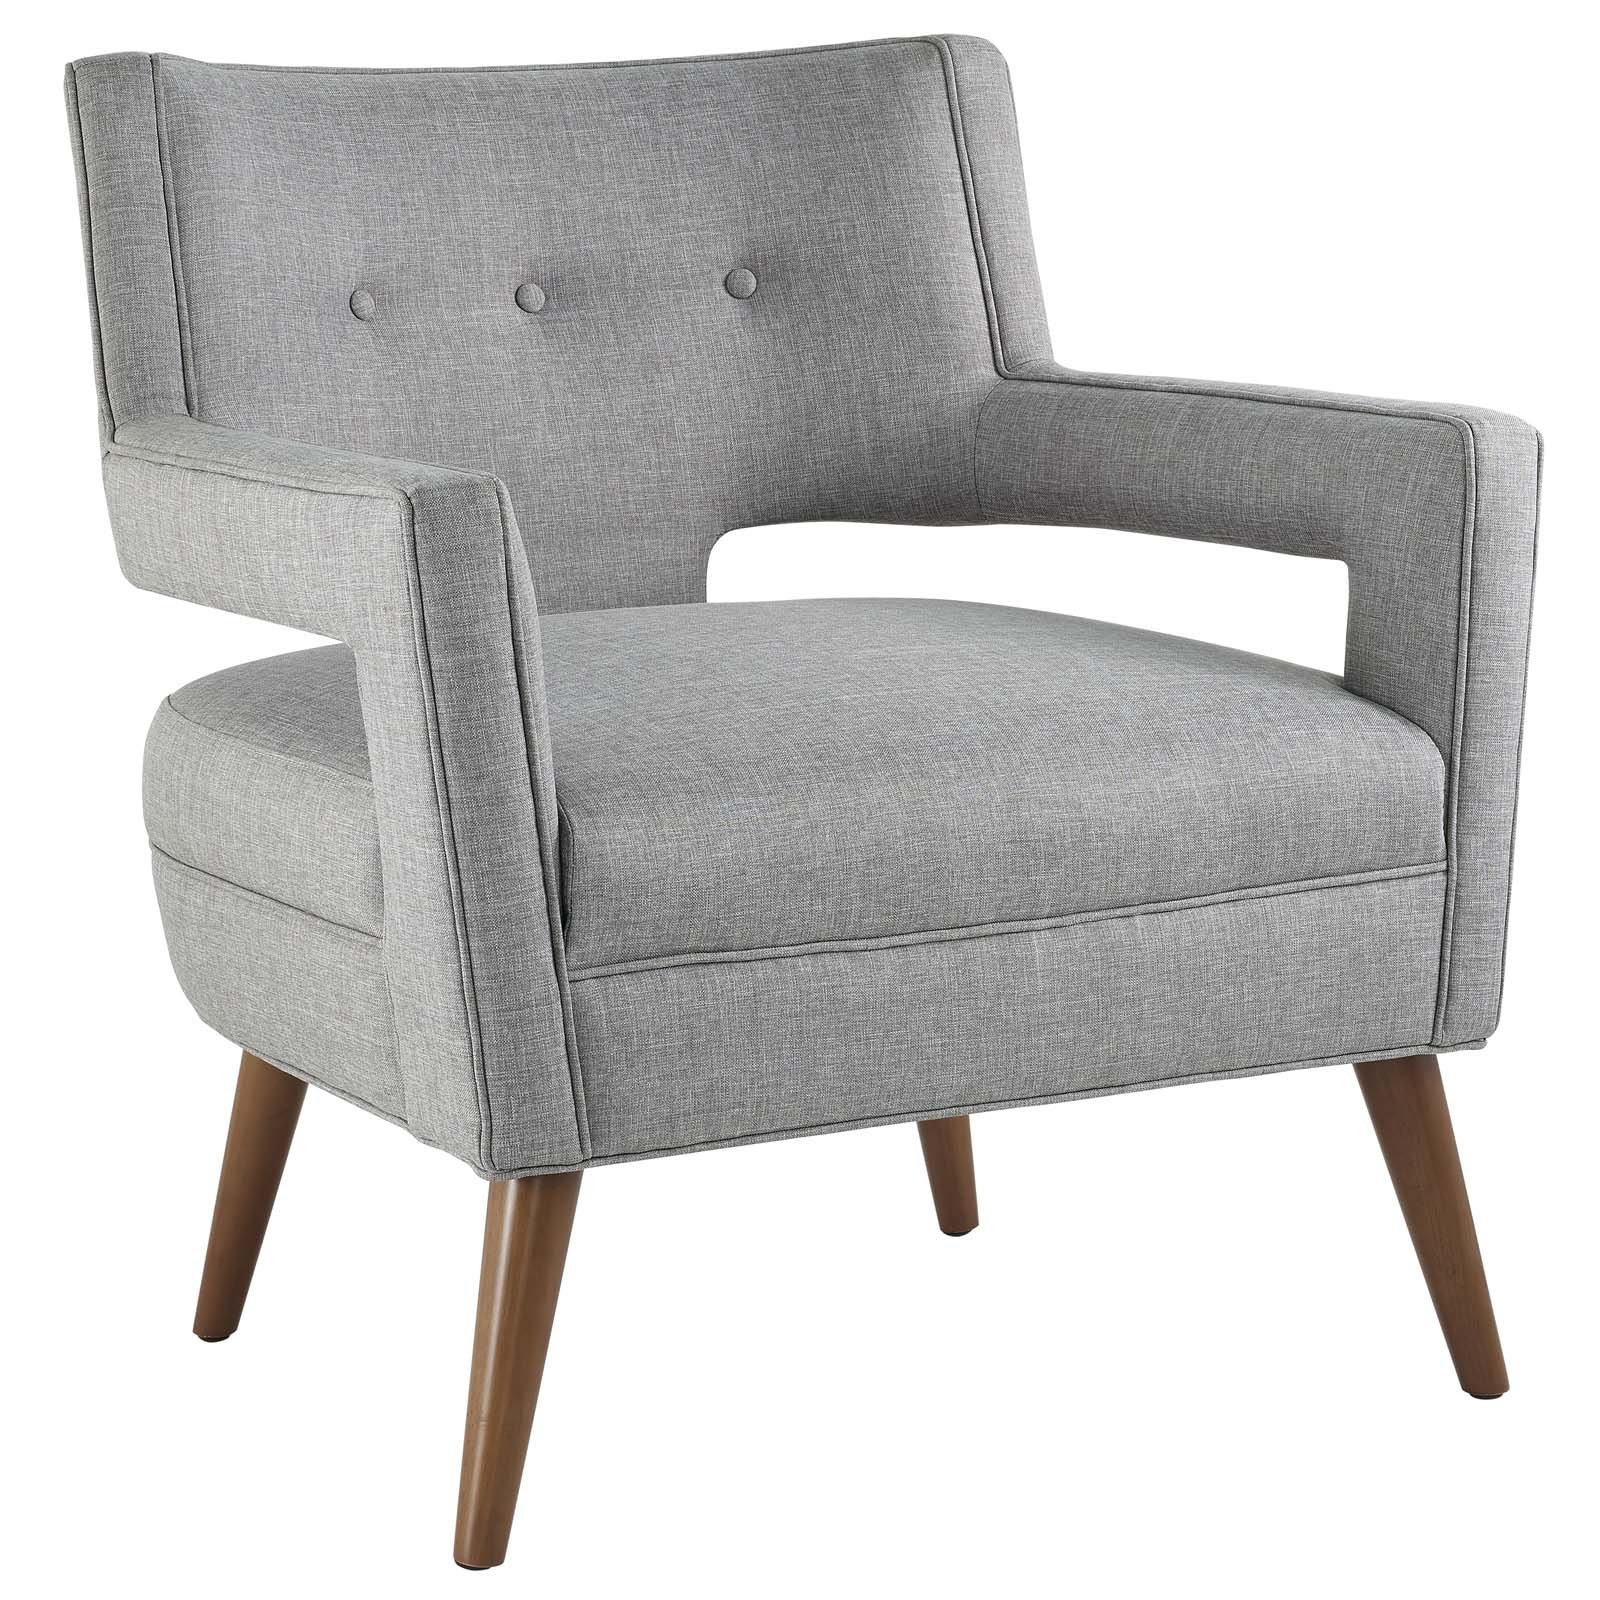 Modway EEI-2142-LGR Sheer Armchair Upholstered Fabric, Full XL, Light Gray by Modway